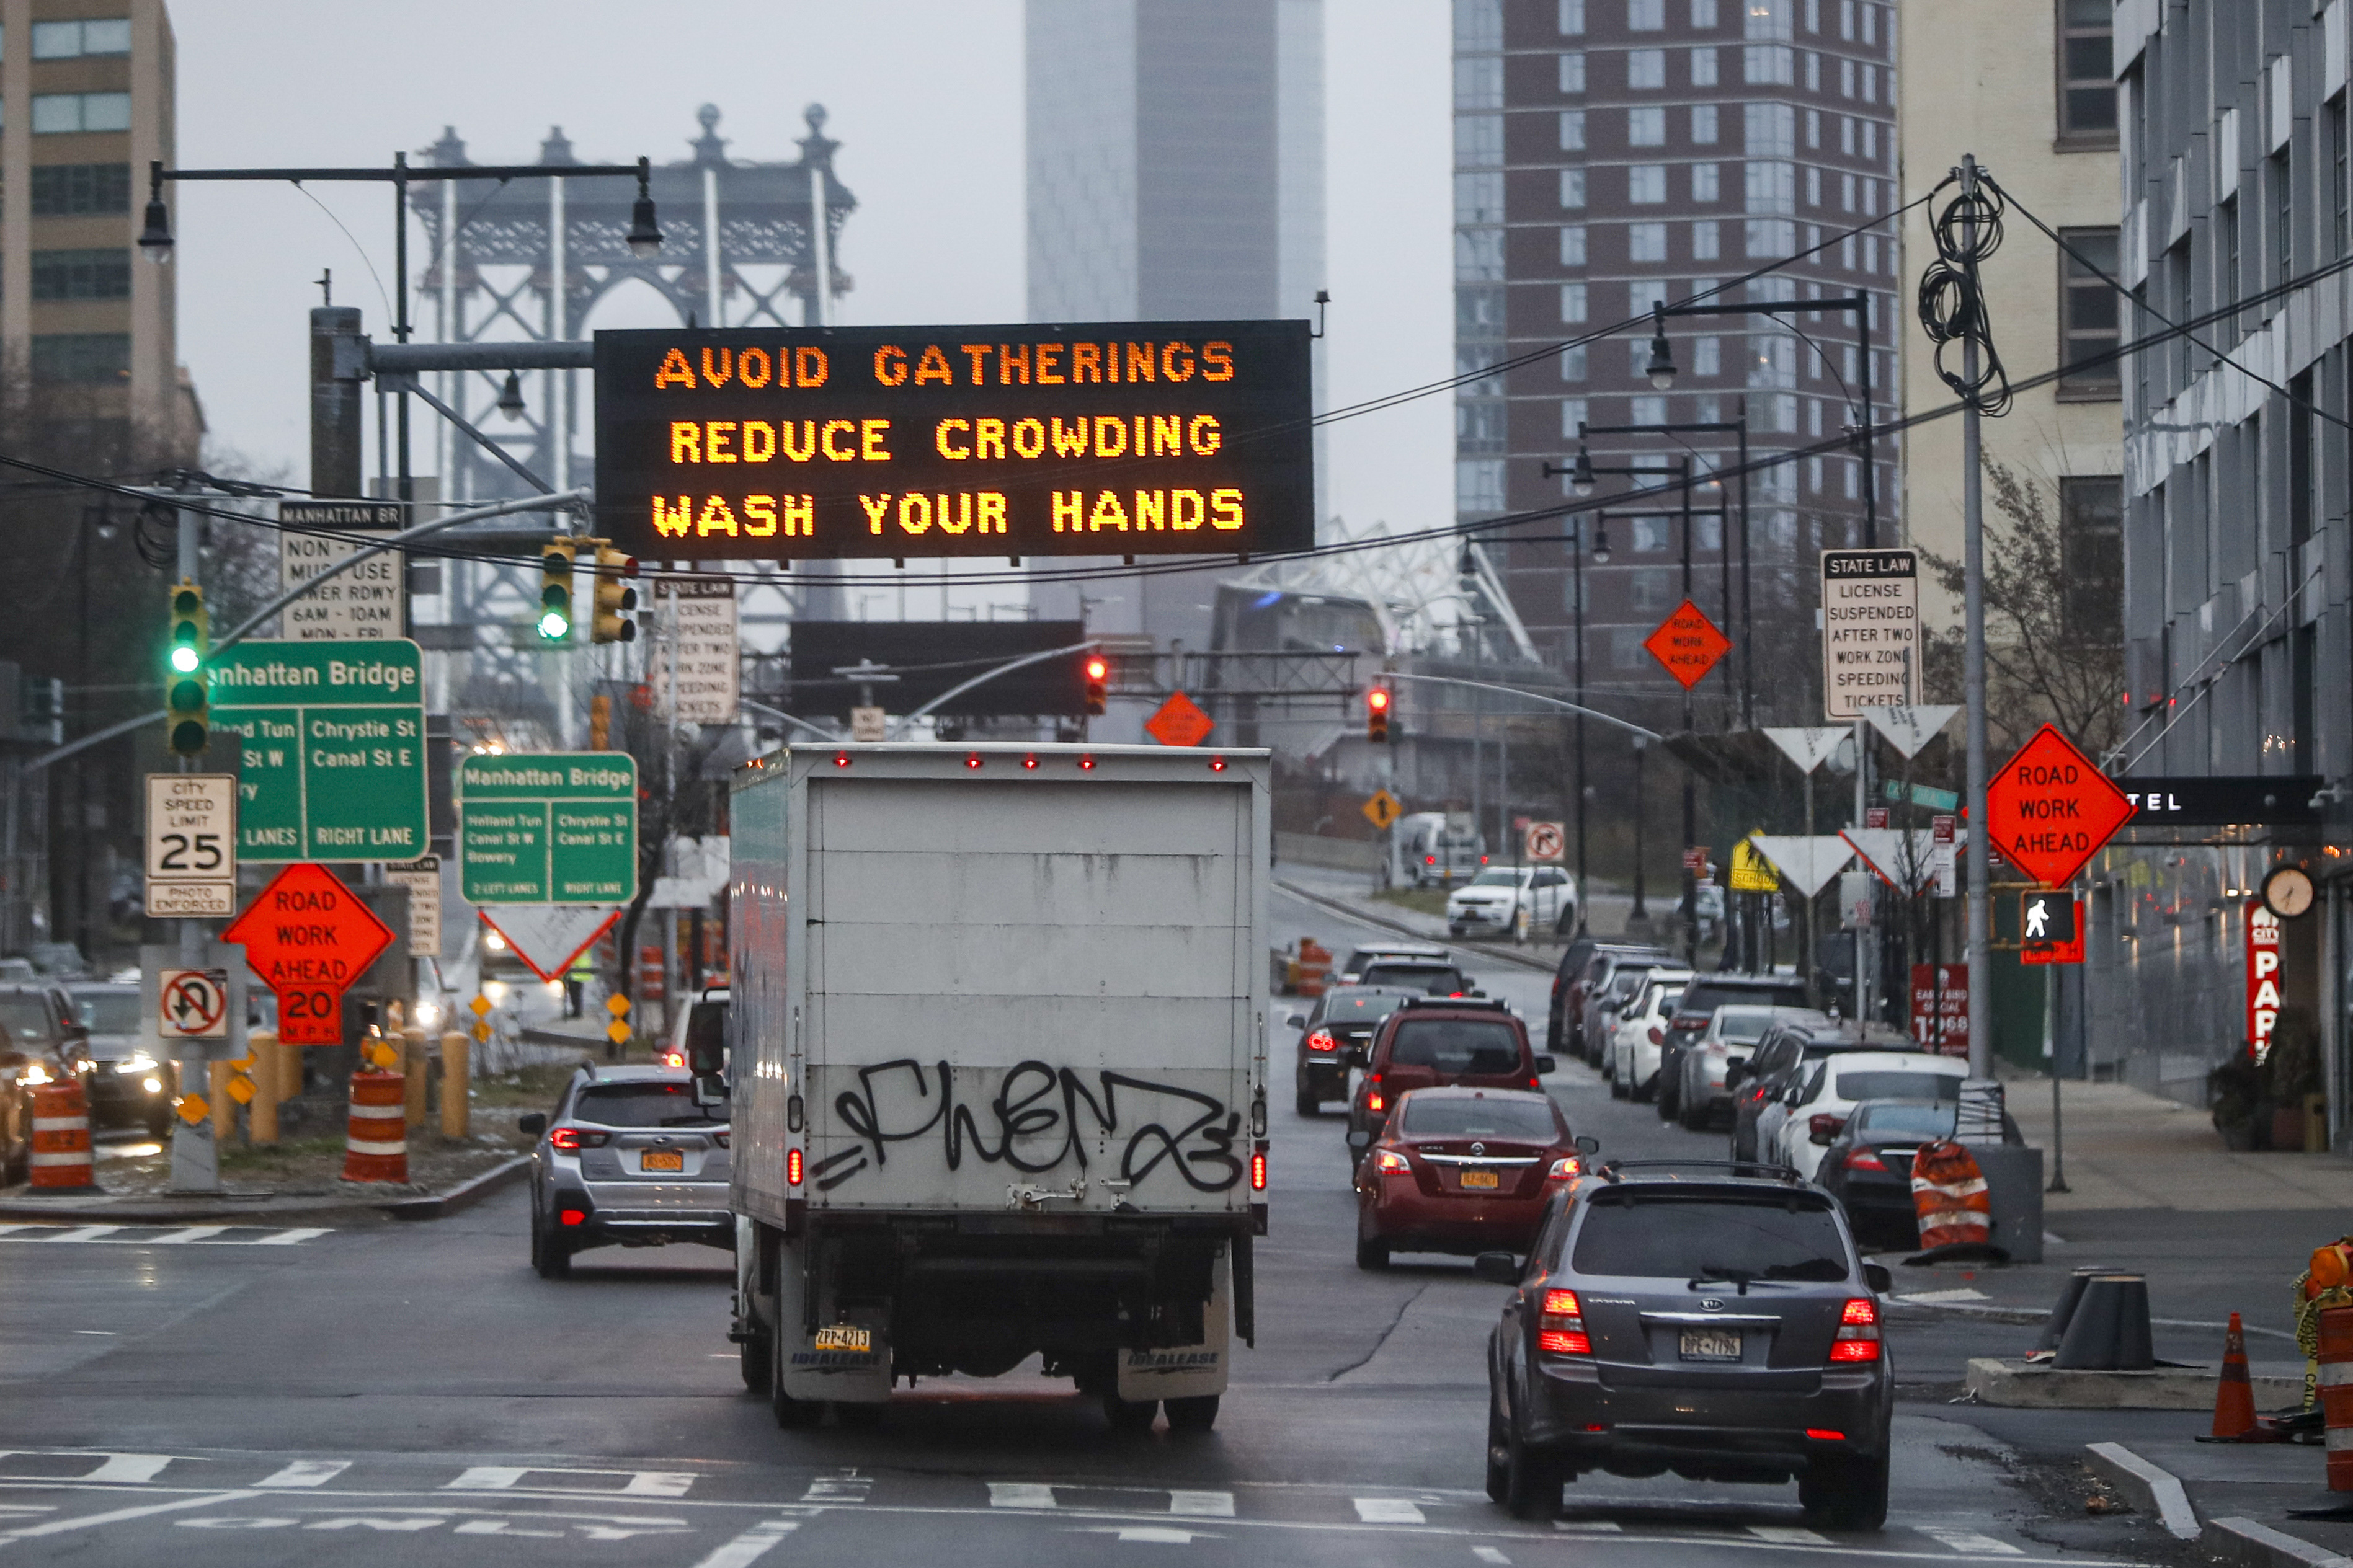 A sign displaying messages on how to reduce the spread of COVID-19, the disease caused by the new coronavirus, is displayed at the mouth of the Manhattan Bridge, Monday, March 23, 2020, in the Brooklyn borough of New York. (AP Photo/John Minchillo)